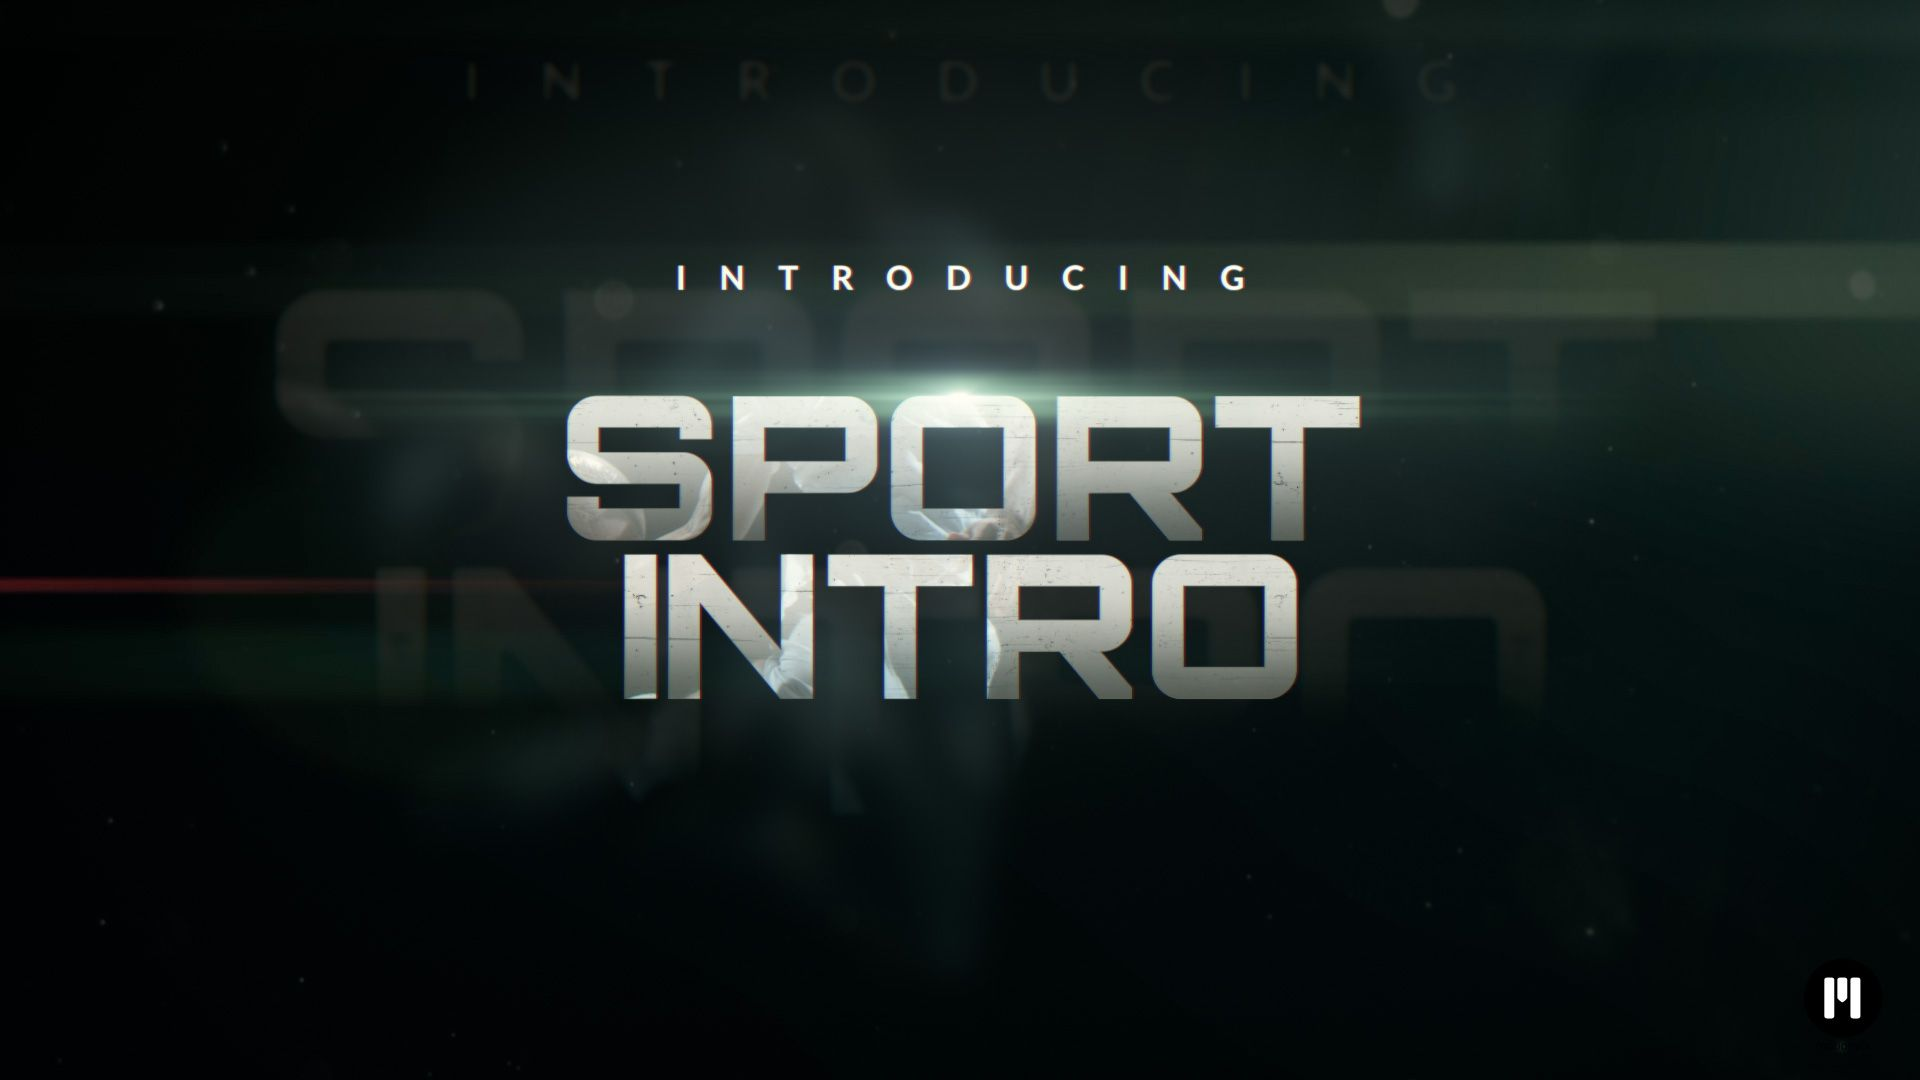 New Template: Sport Intro - www motionvfx com/N2296 #FCPX